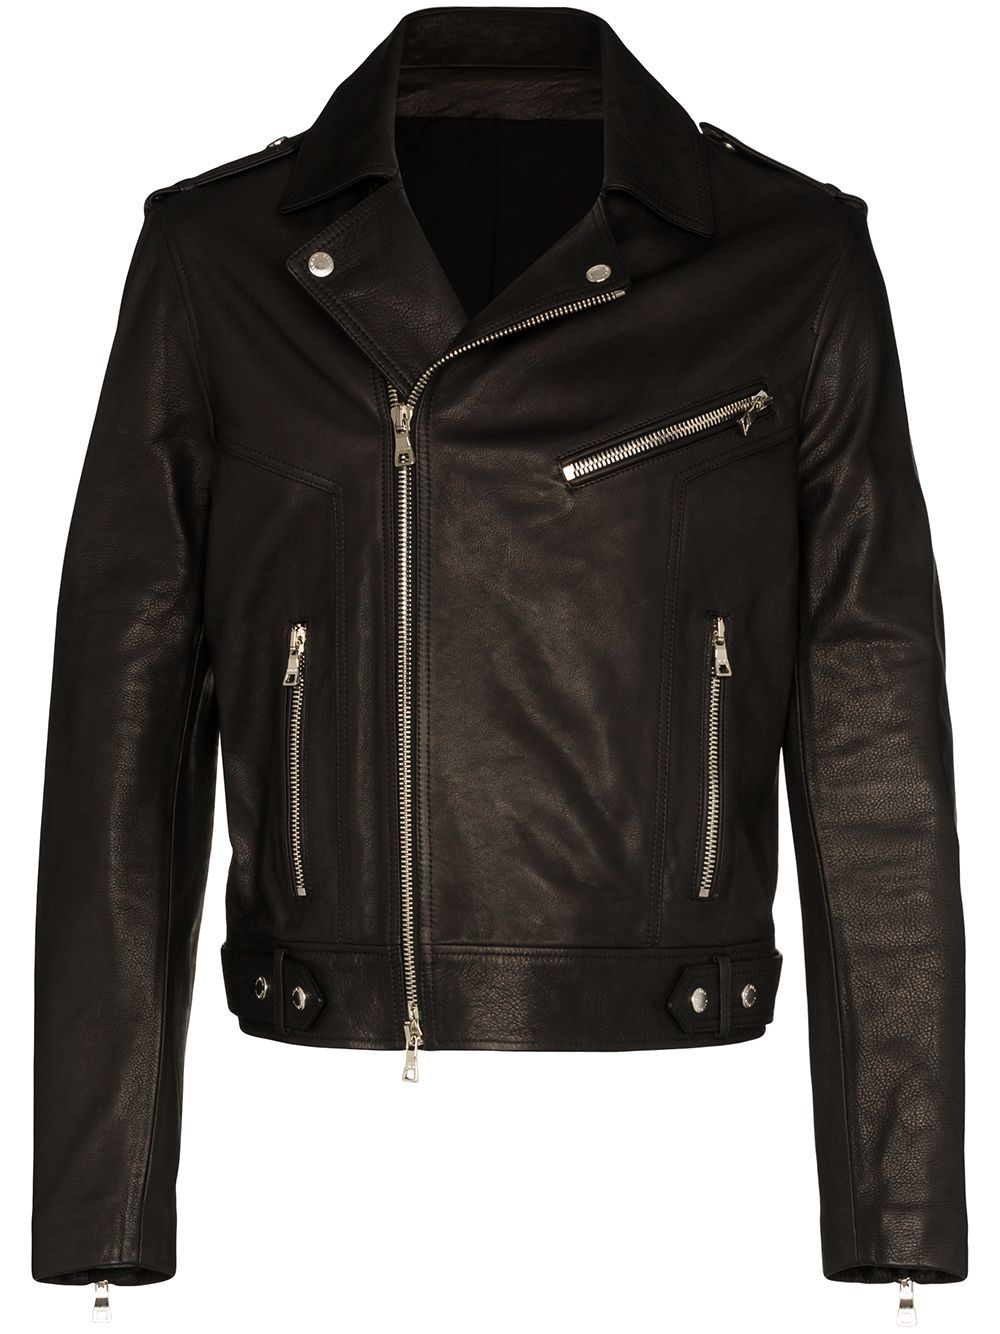 BALMAIN Logo Leather Biker Jacket Black